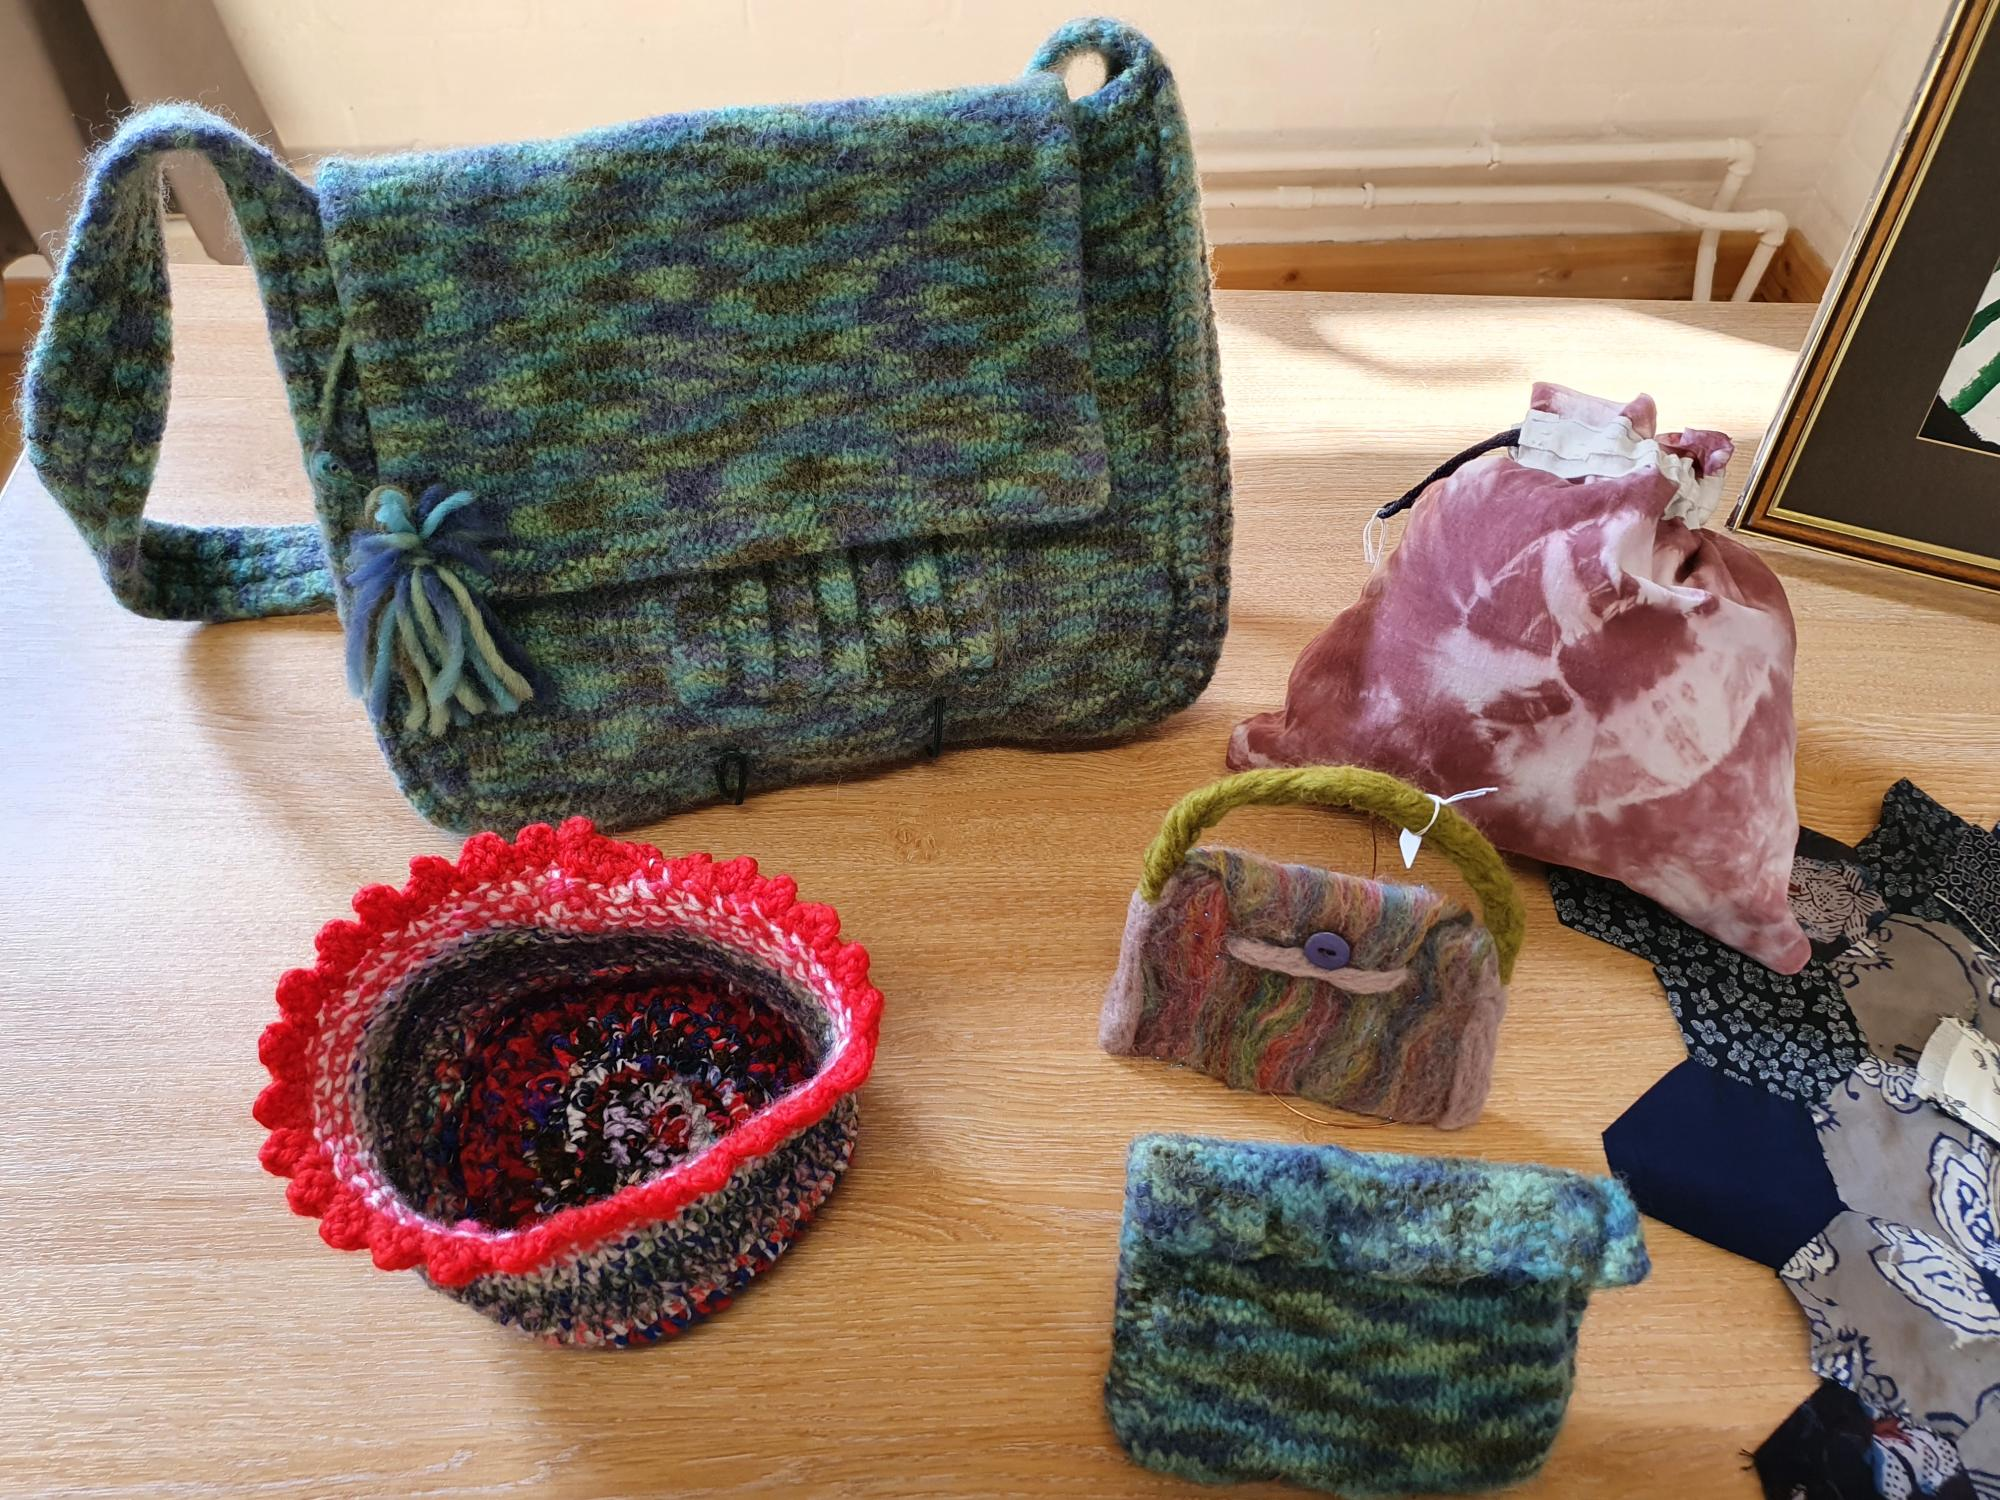 Knitting__felting_and_crochet.jpg